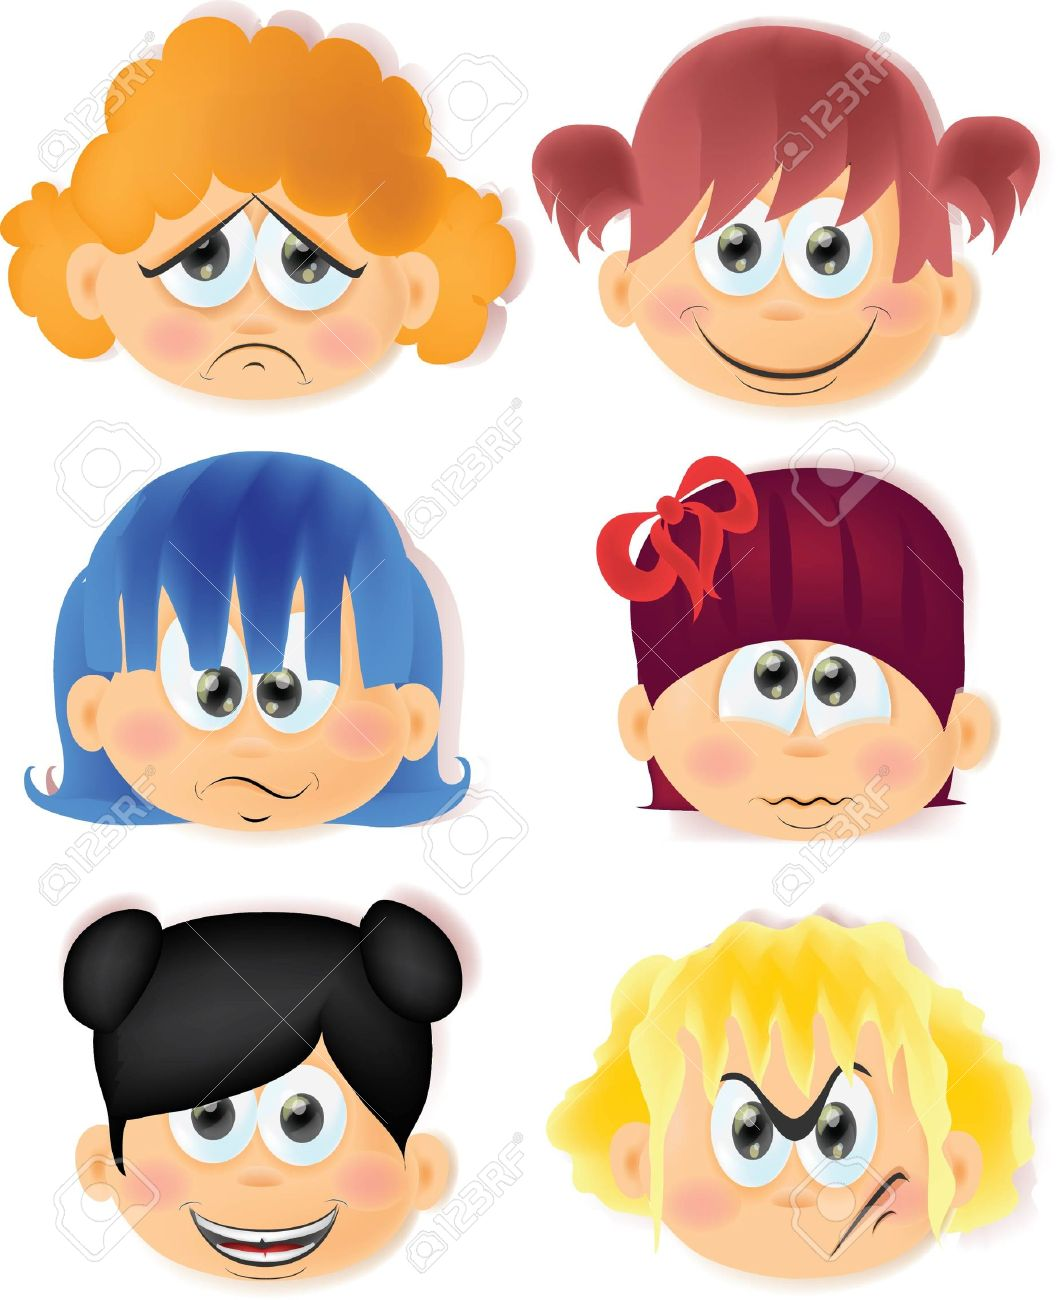 229,928 Emotion Faces Stock Vector Illustration And Royalty Free ...